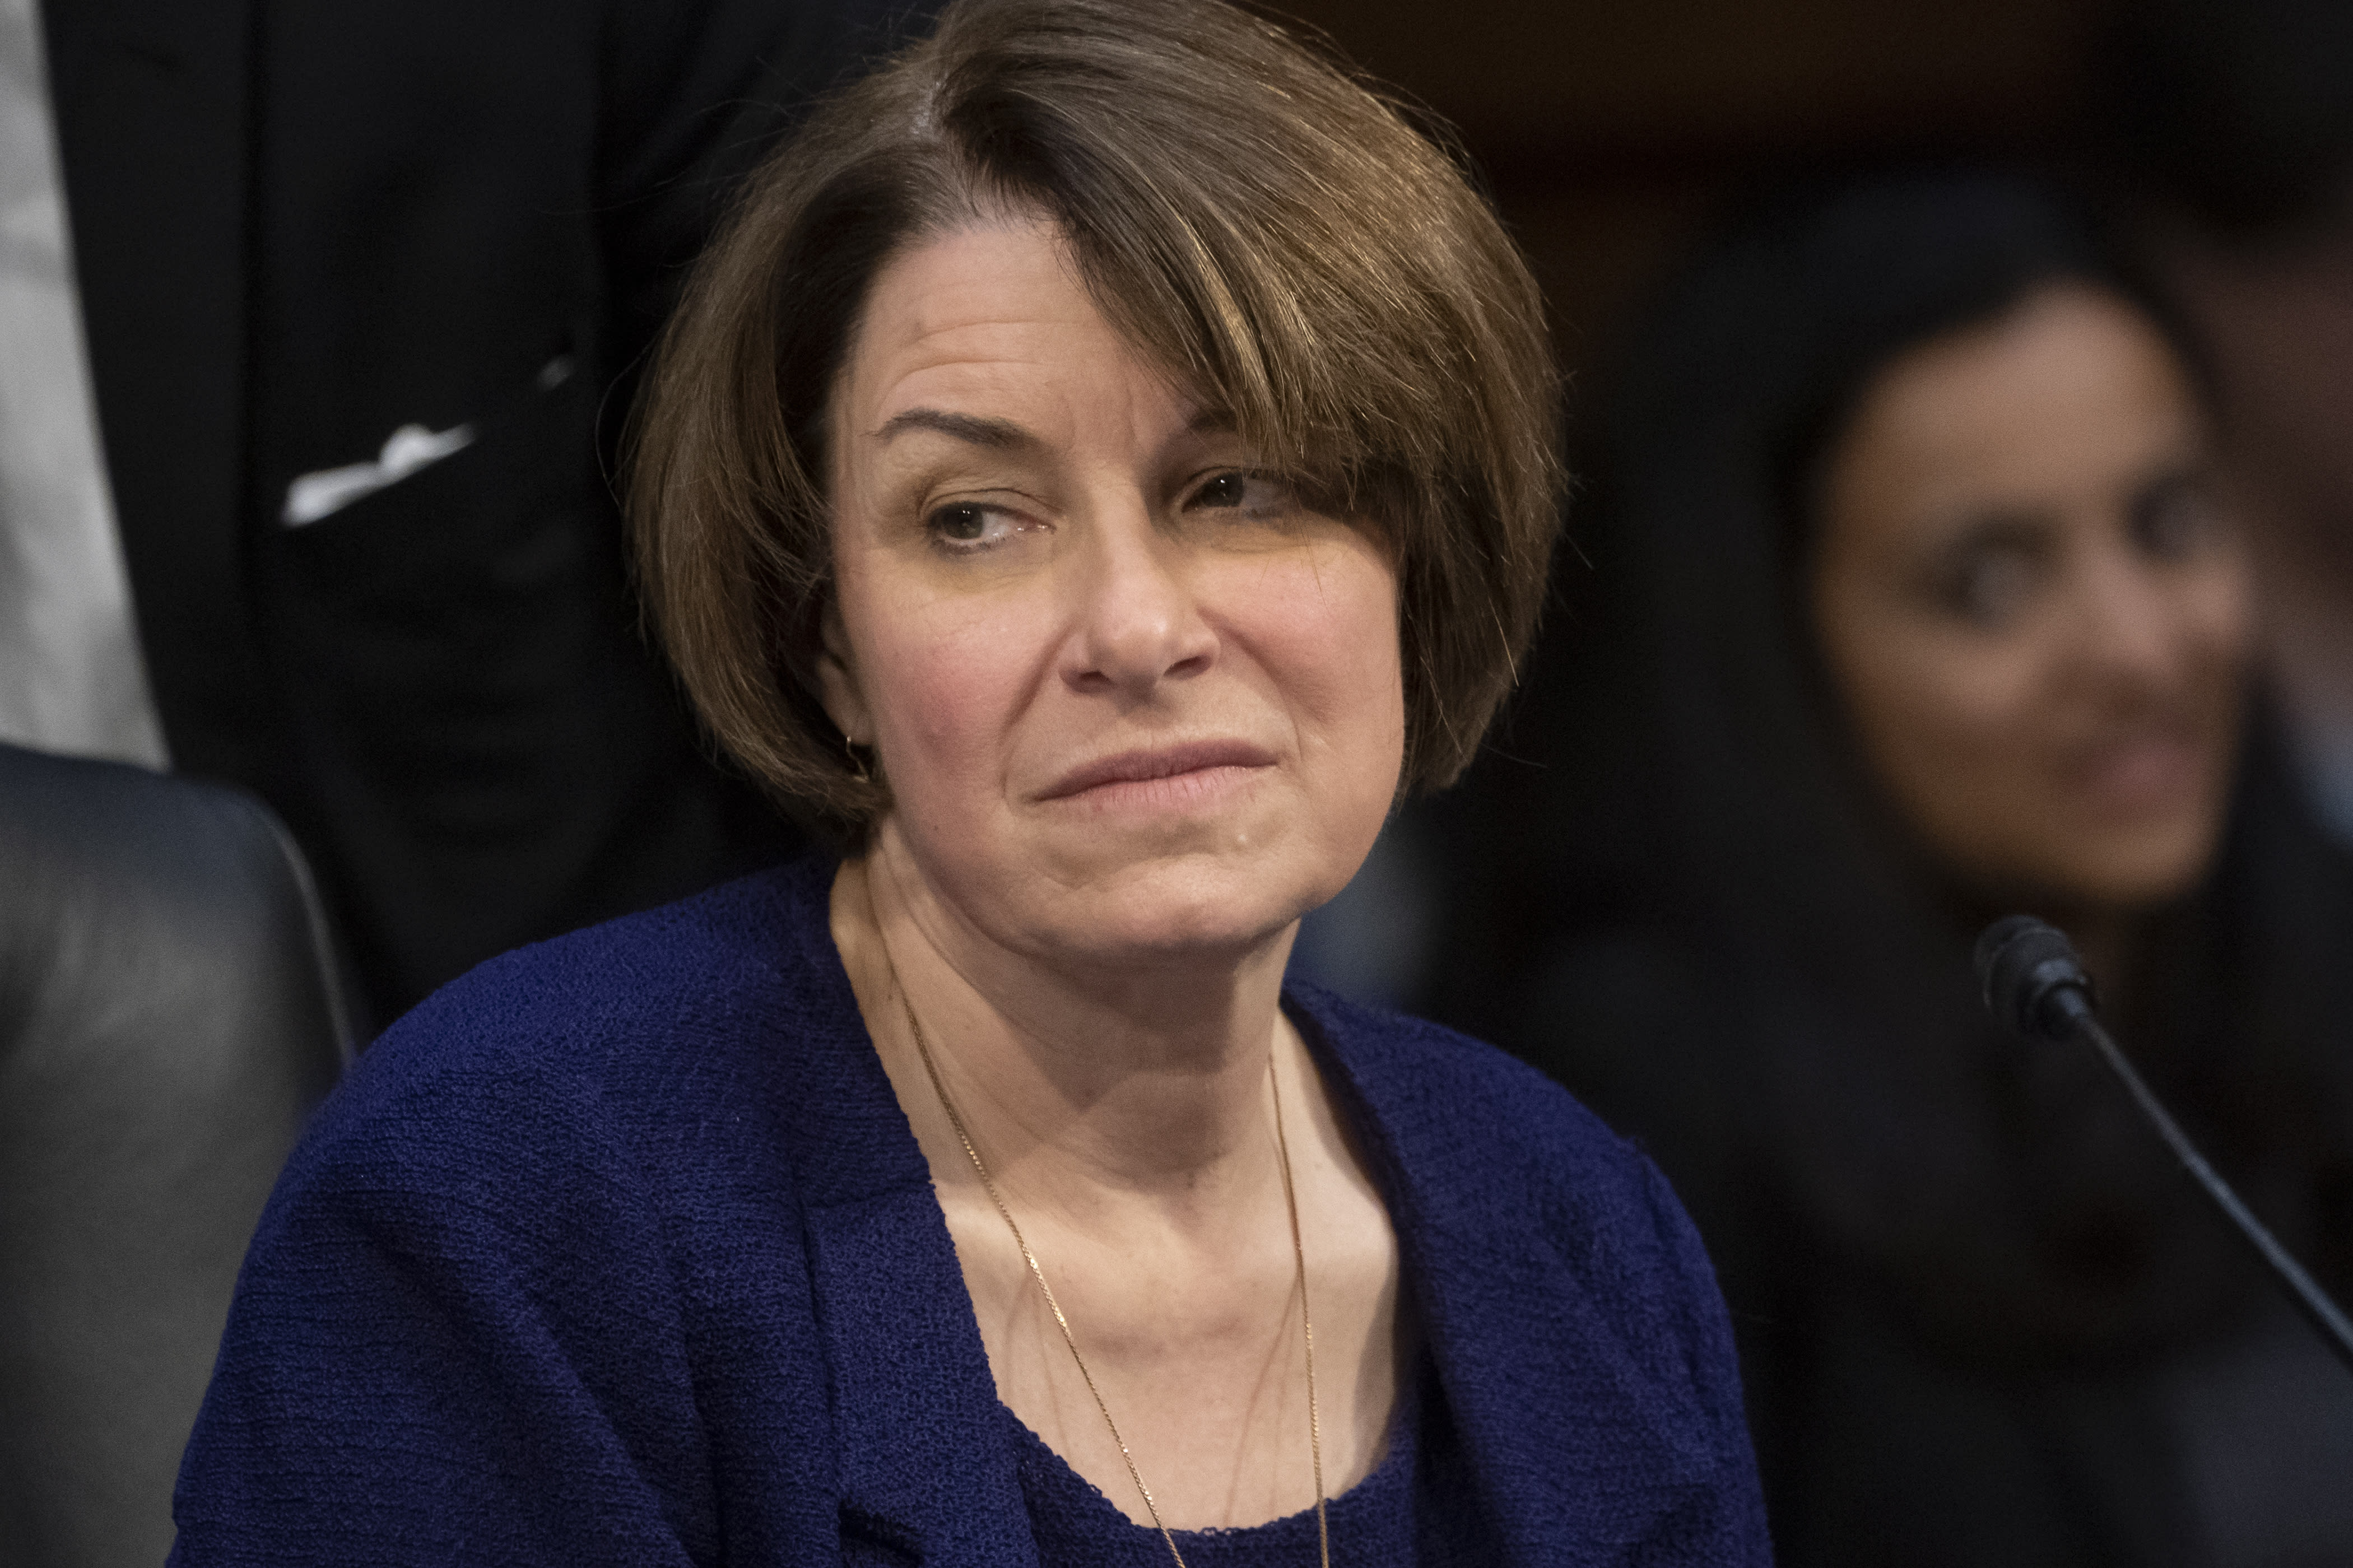 "Senate Judiciary Committee member Sen. Amy Klobuchar, D-Minn., prepares to vote against advancing William Barr's nomination for attorney general, as the panel meets on Capitol Hill in Washington, Thursday, Feb. 7, 2019. ""This is not the time to install an attorney general who has repeatedly espoused a view of unfettered executive power."" Klobuchar said Thursday. (AP Photo/J. Scott Applewhite)"